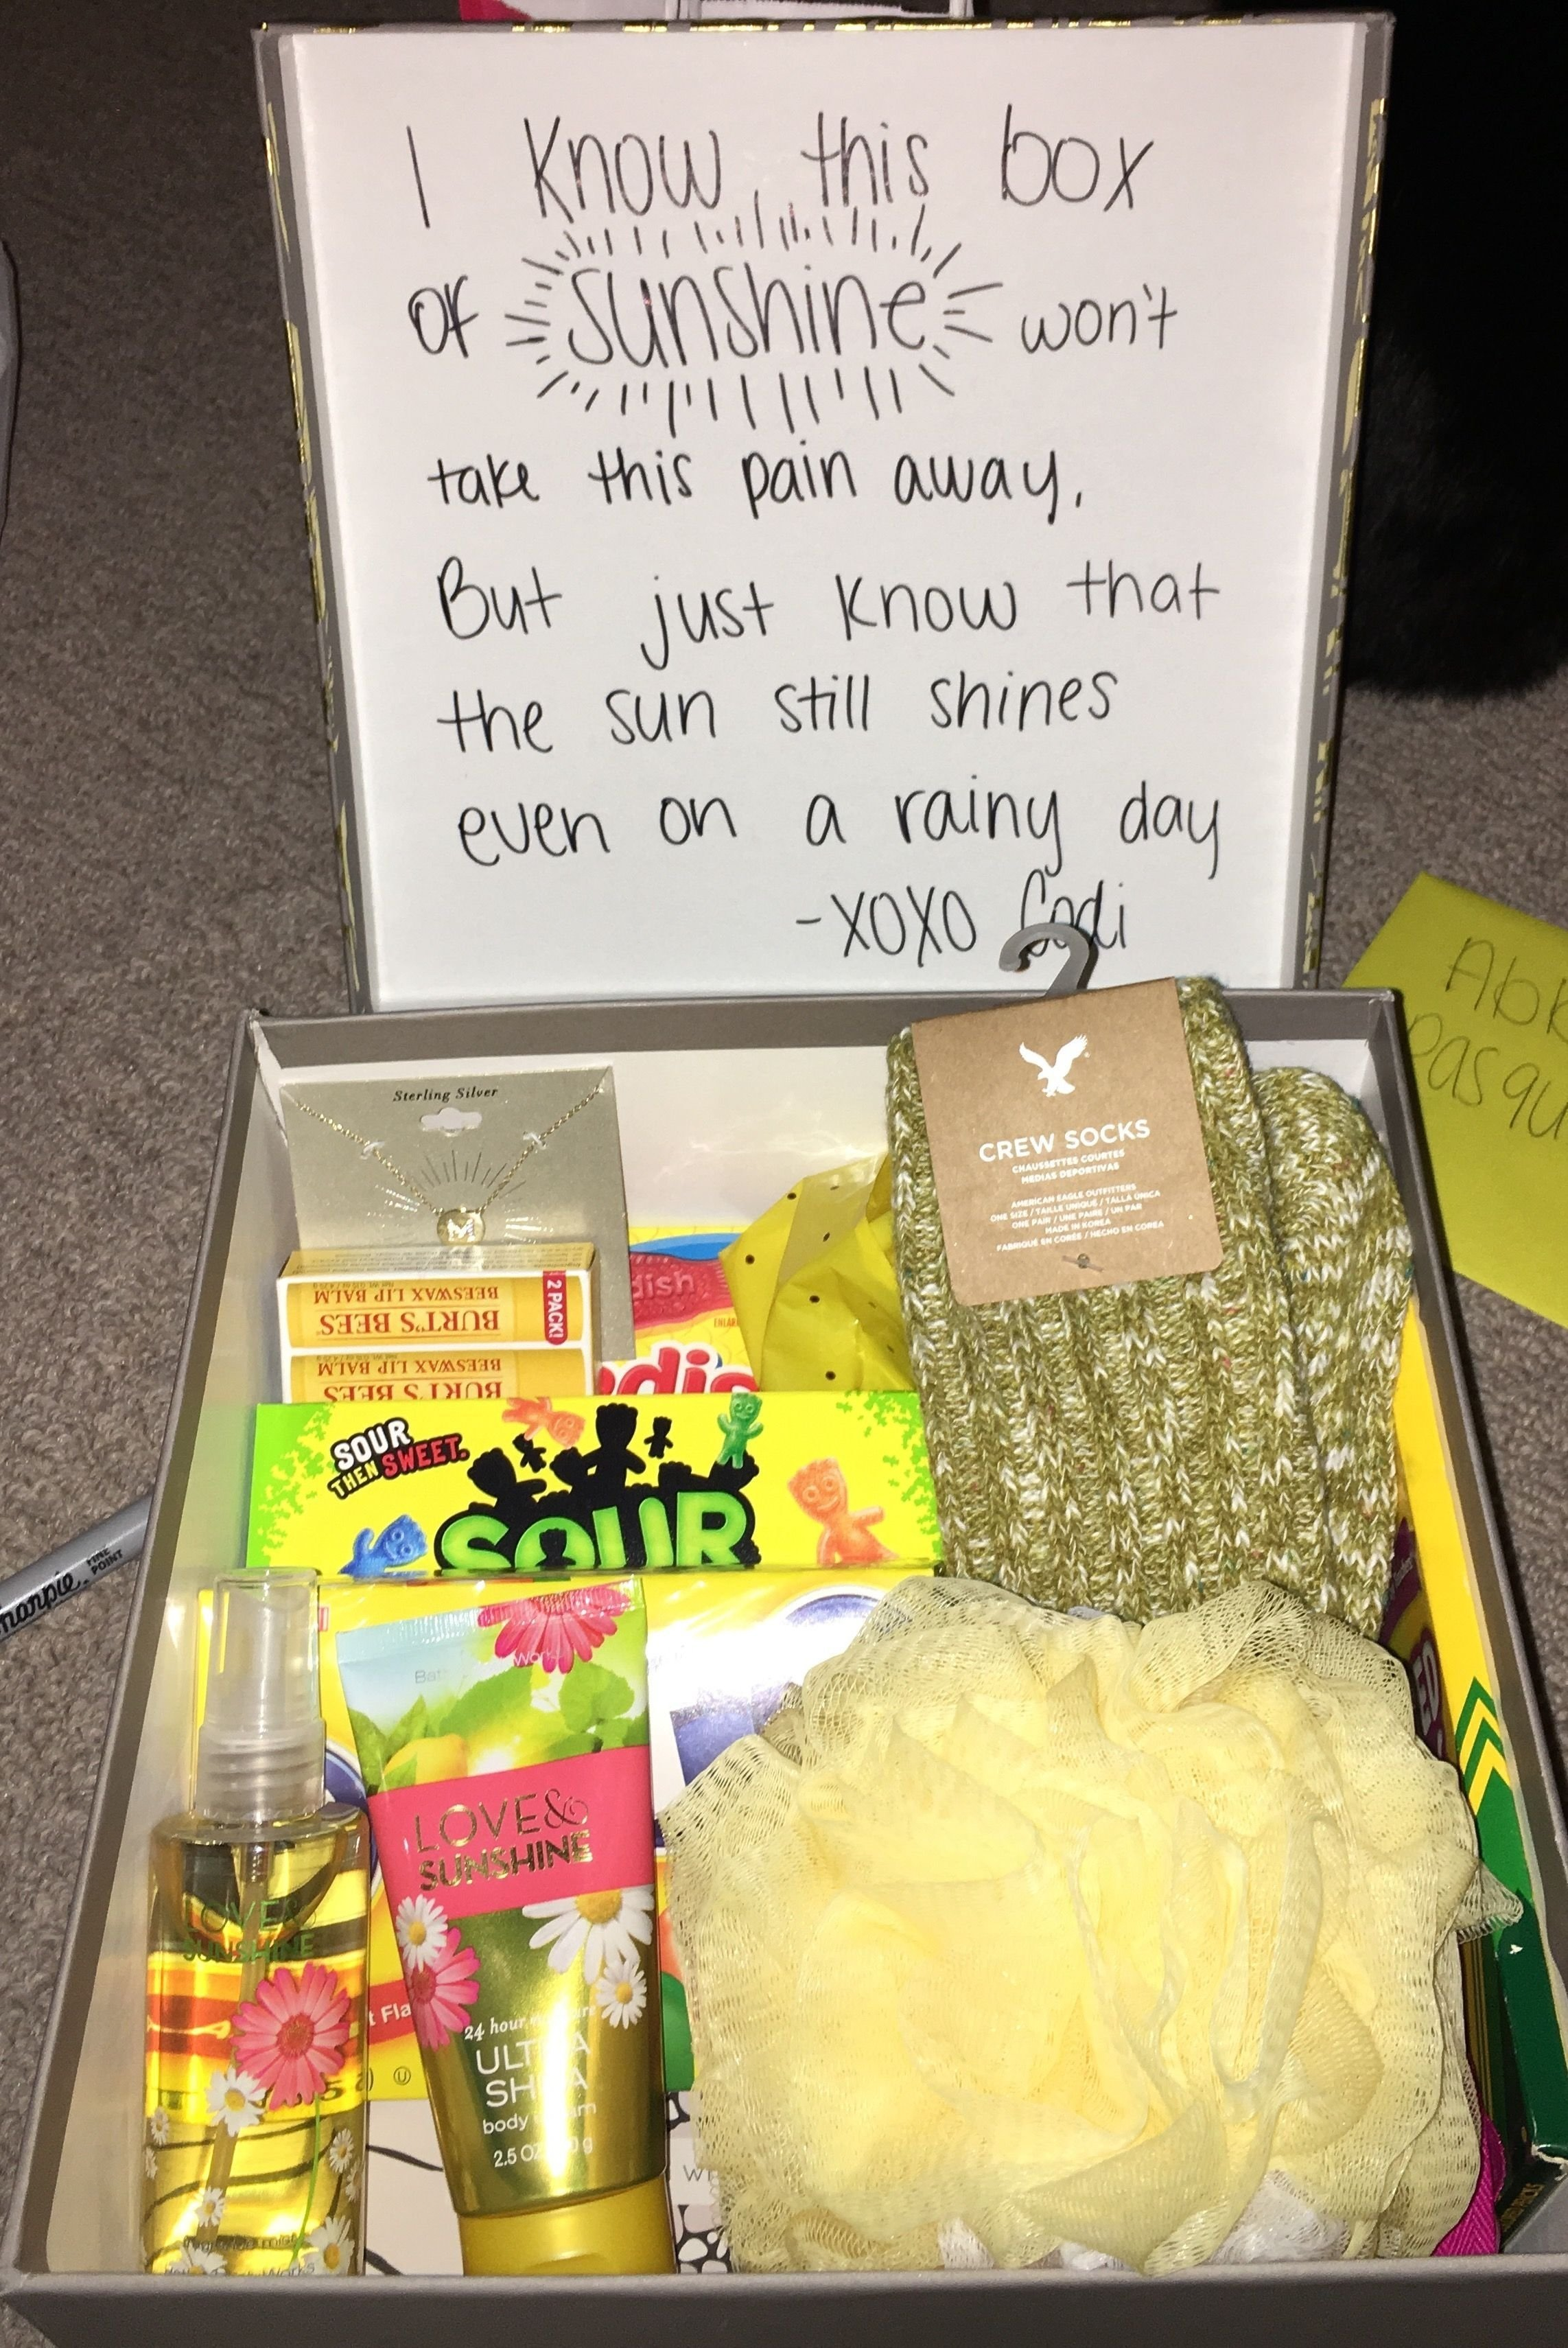 10 Stylish Birthday Gift Ideas For Best Friend care package for grieving friend good idea pinterest gift 13 2020